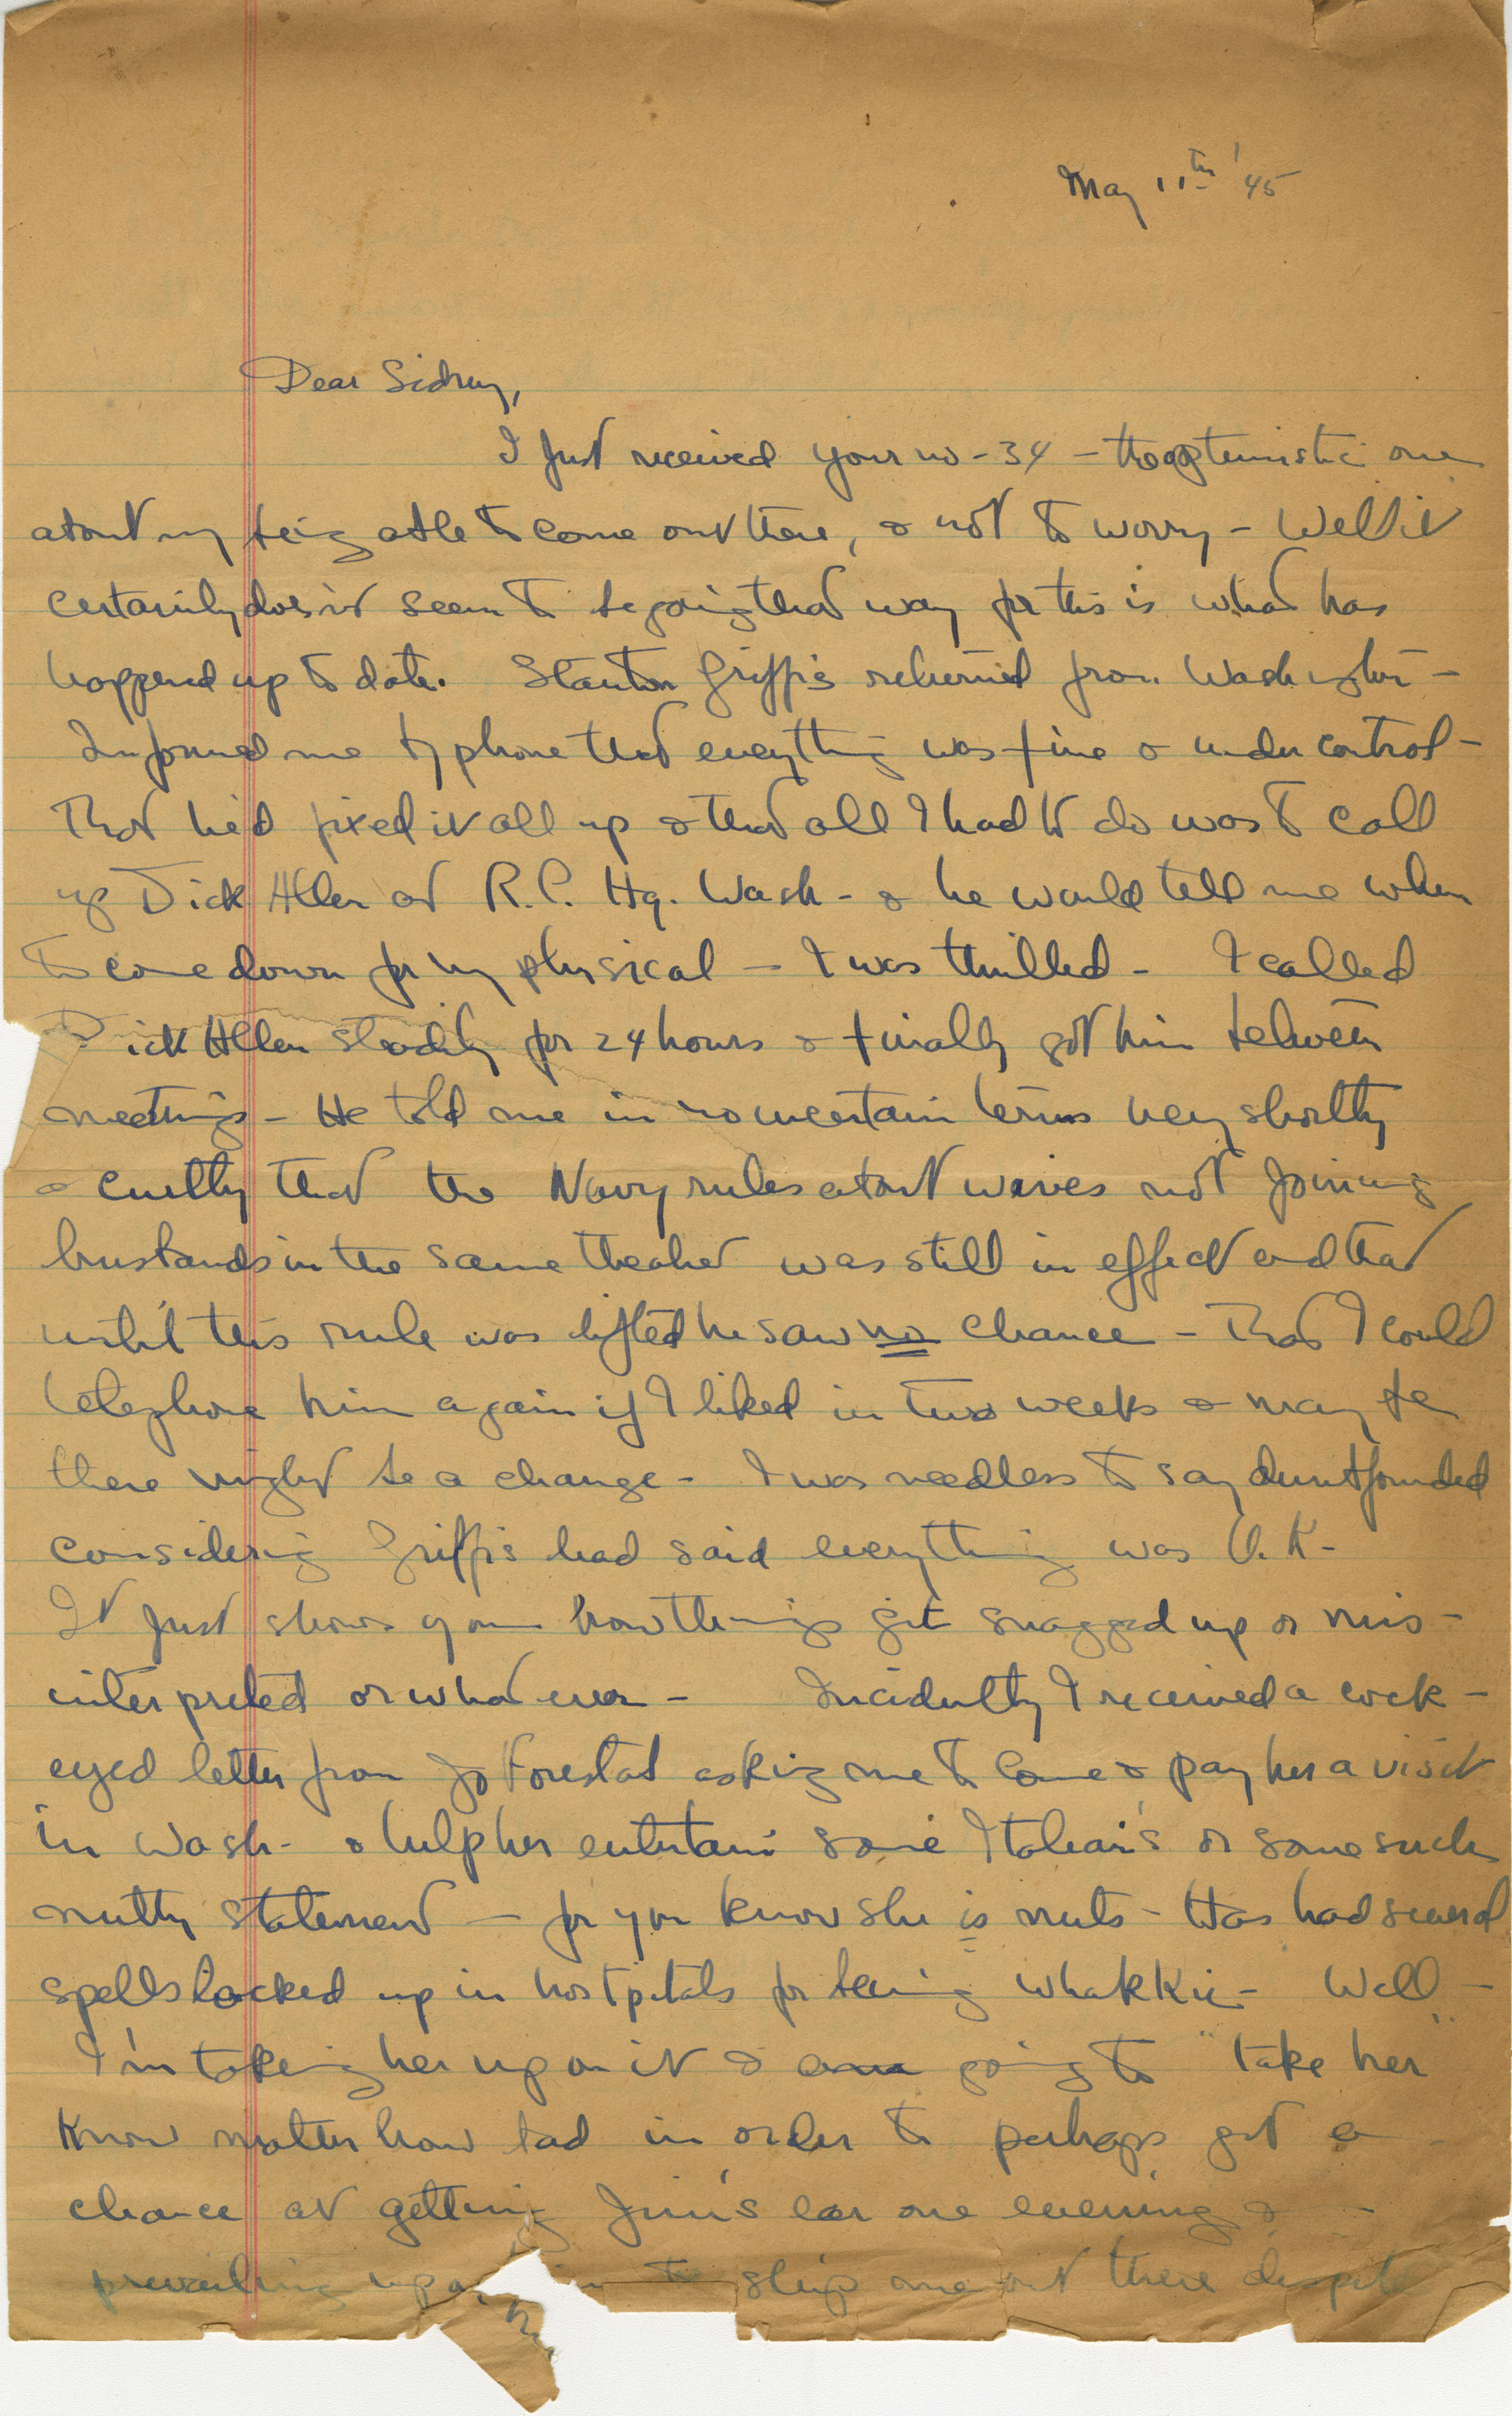 Letter from Gertrude Sanford Legendre, July 4, 1945